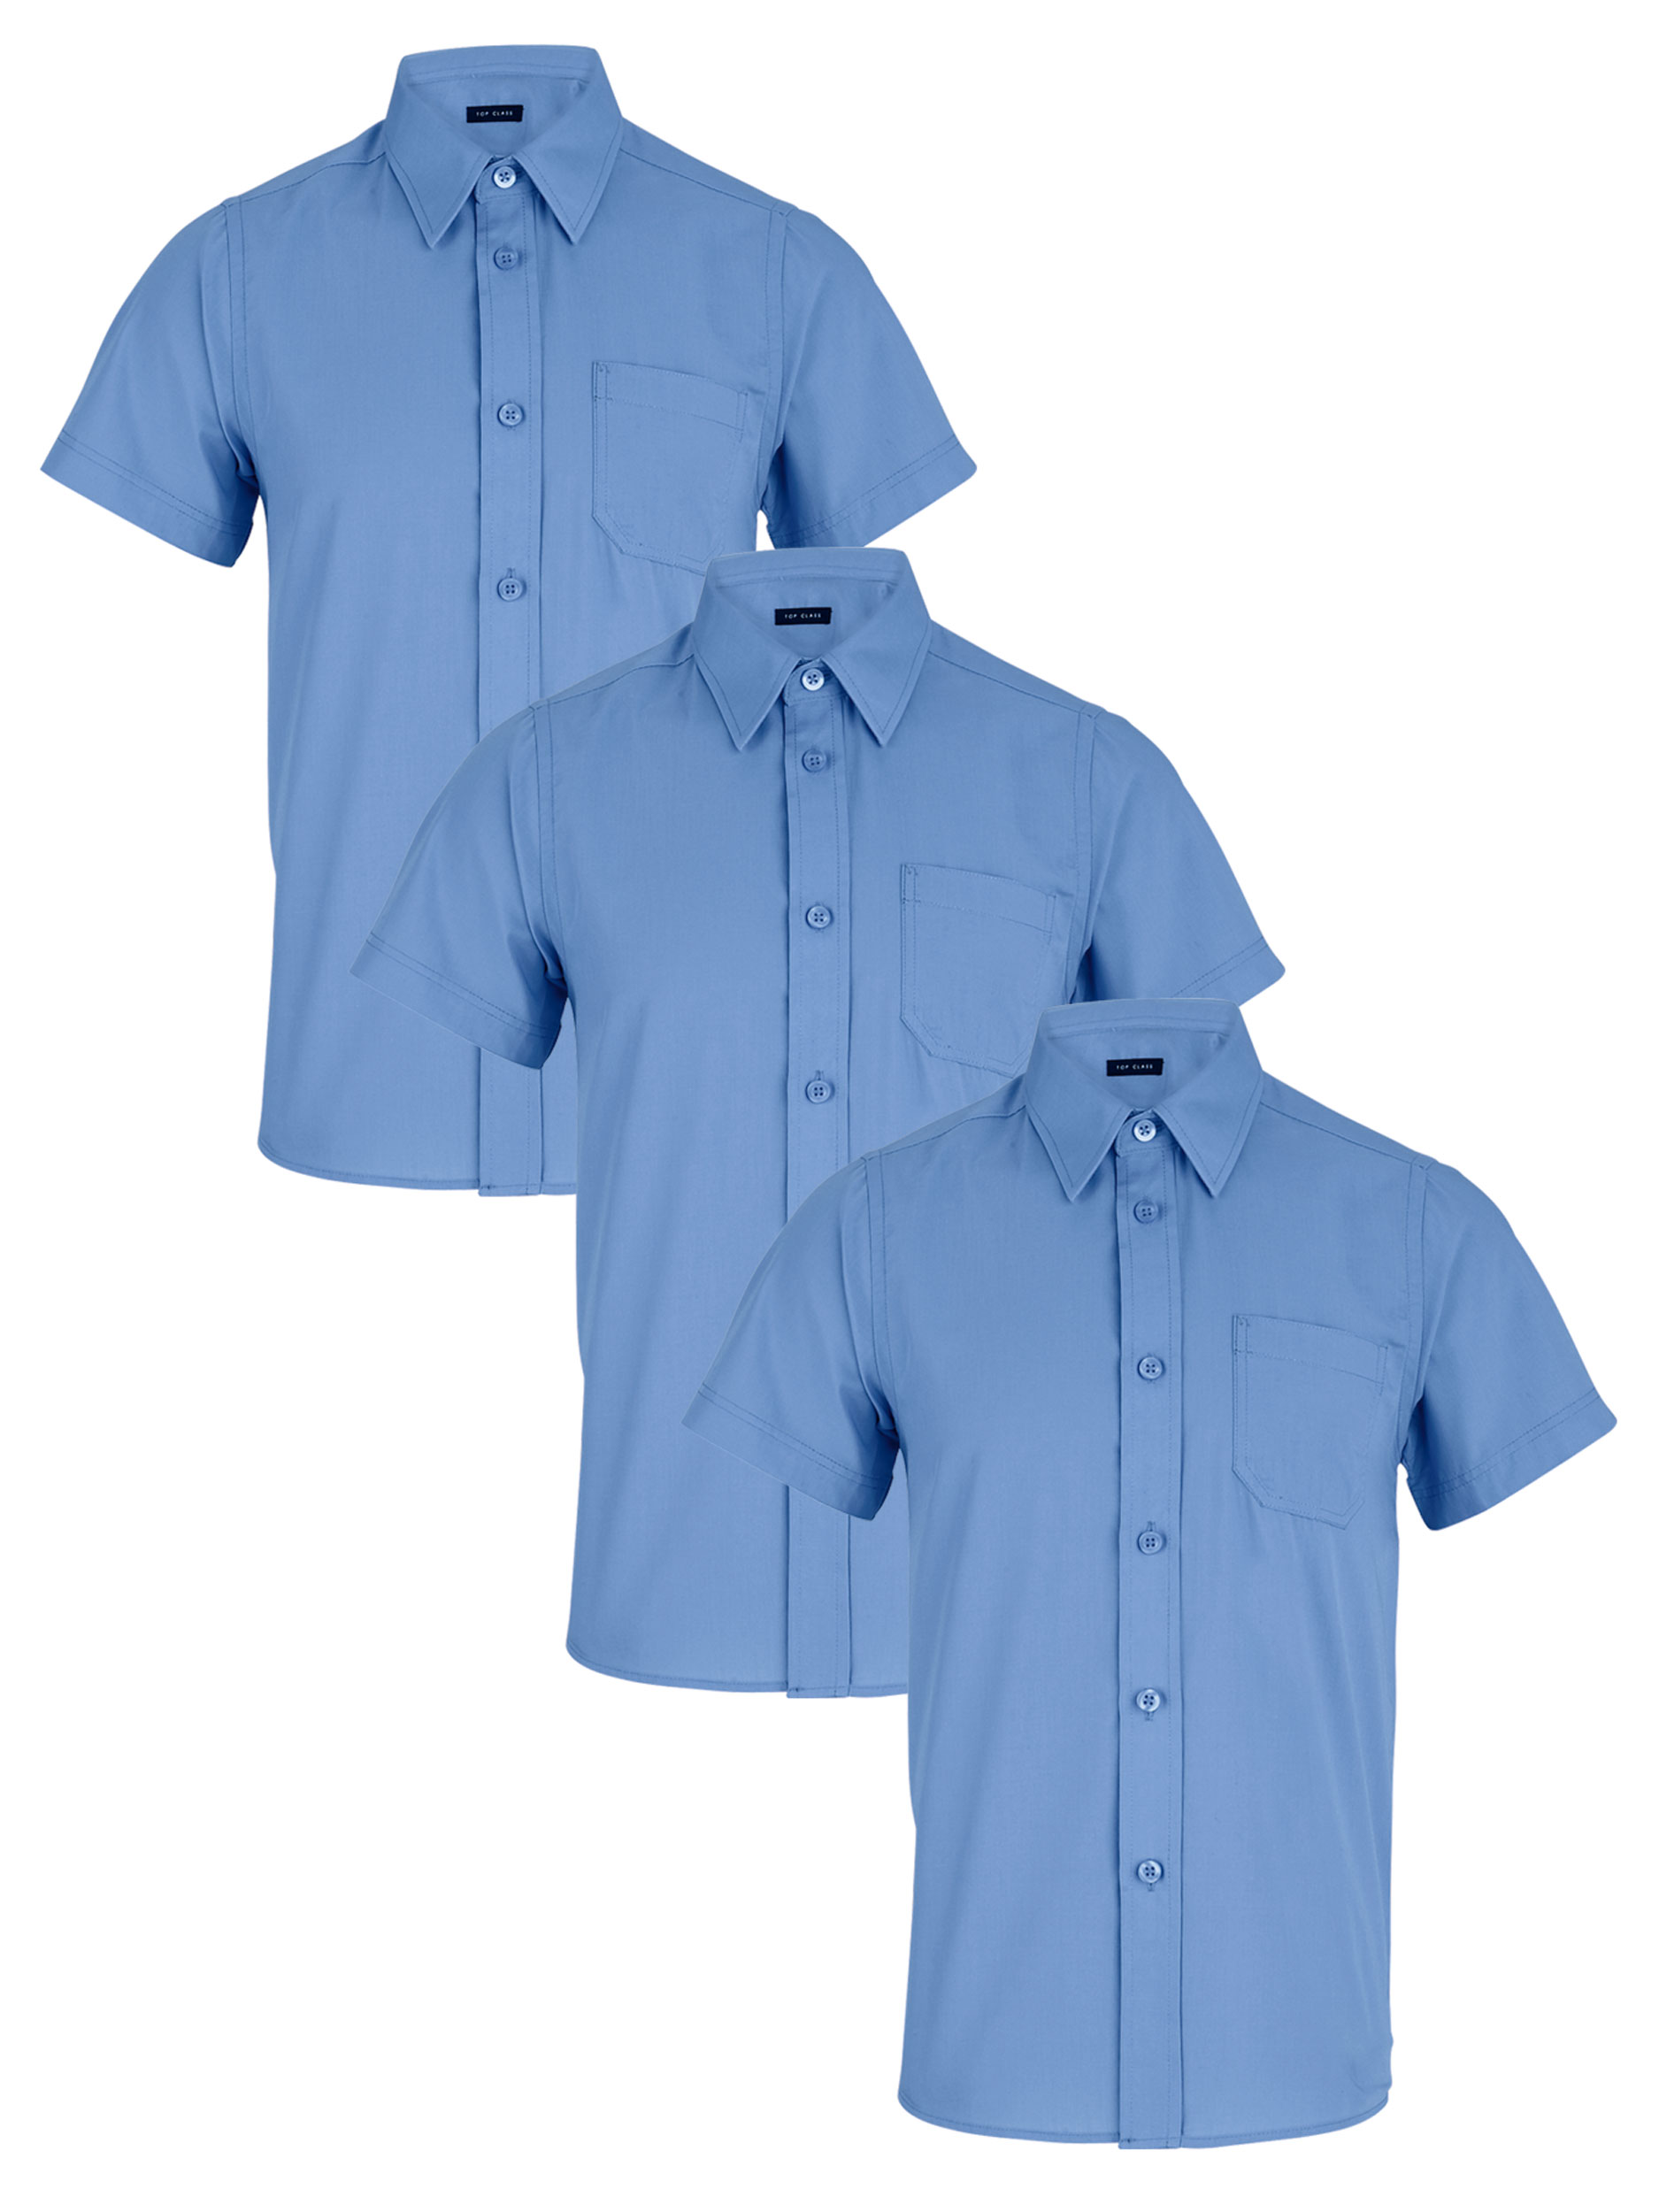 Top Class Boys 3 Pack of Short Sleeved School Shirts